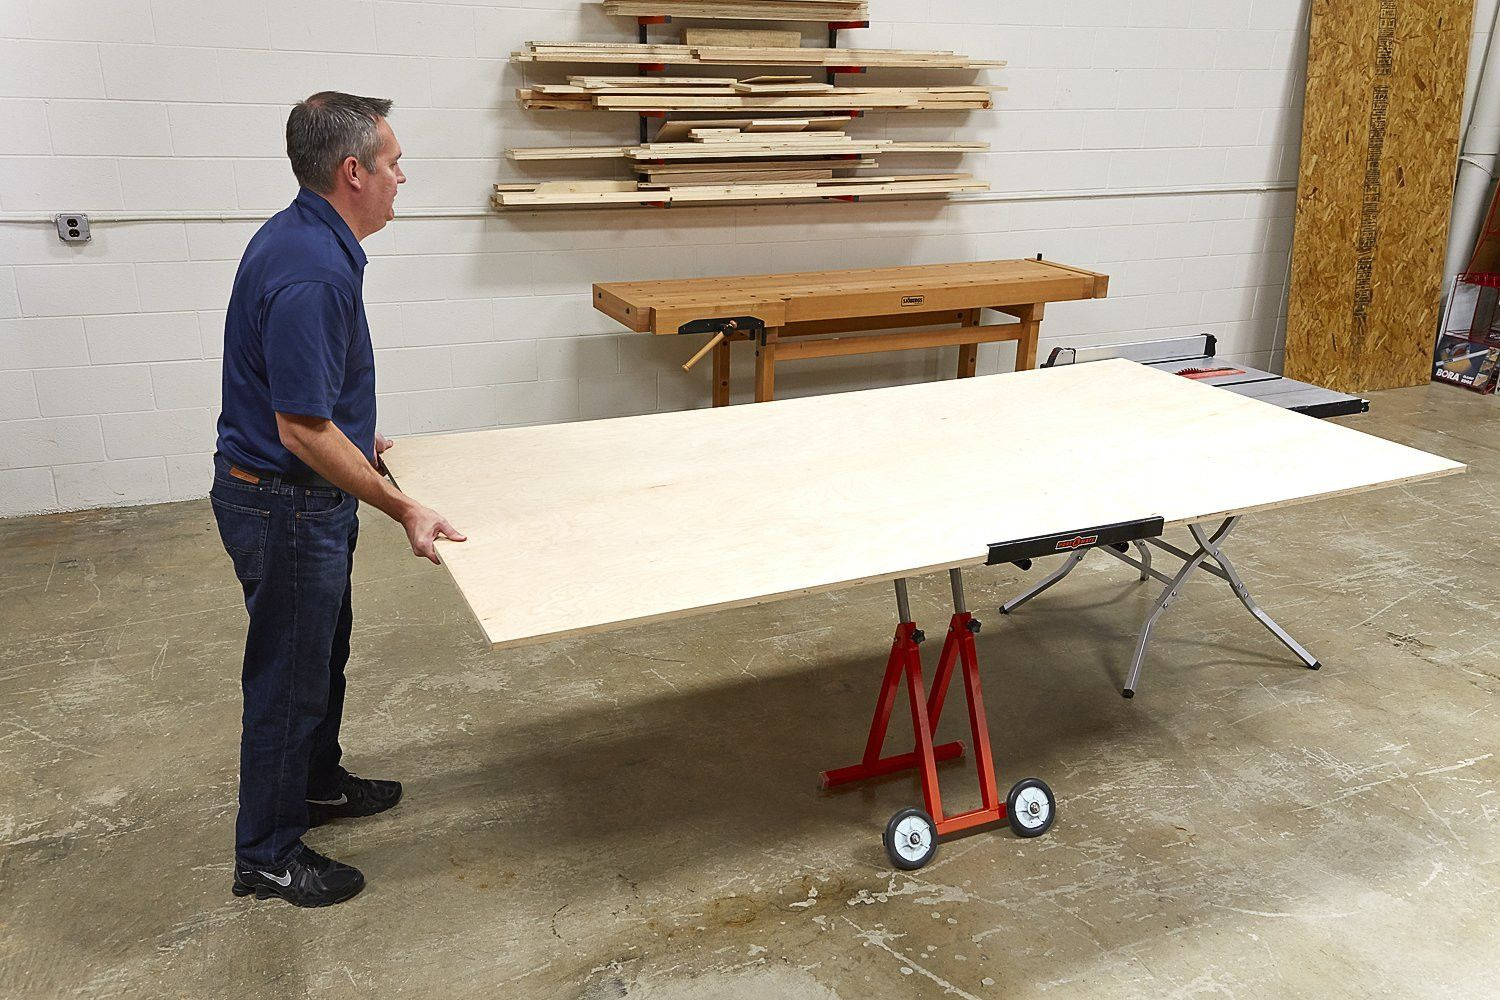 Portamate Pm 1800 Panel Carrier For Use With Table Saws In